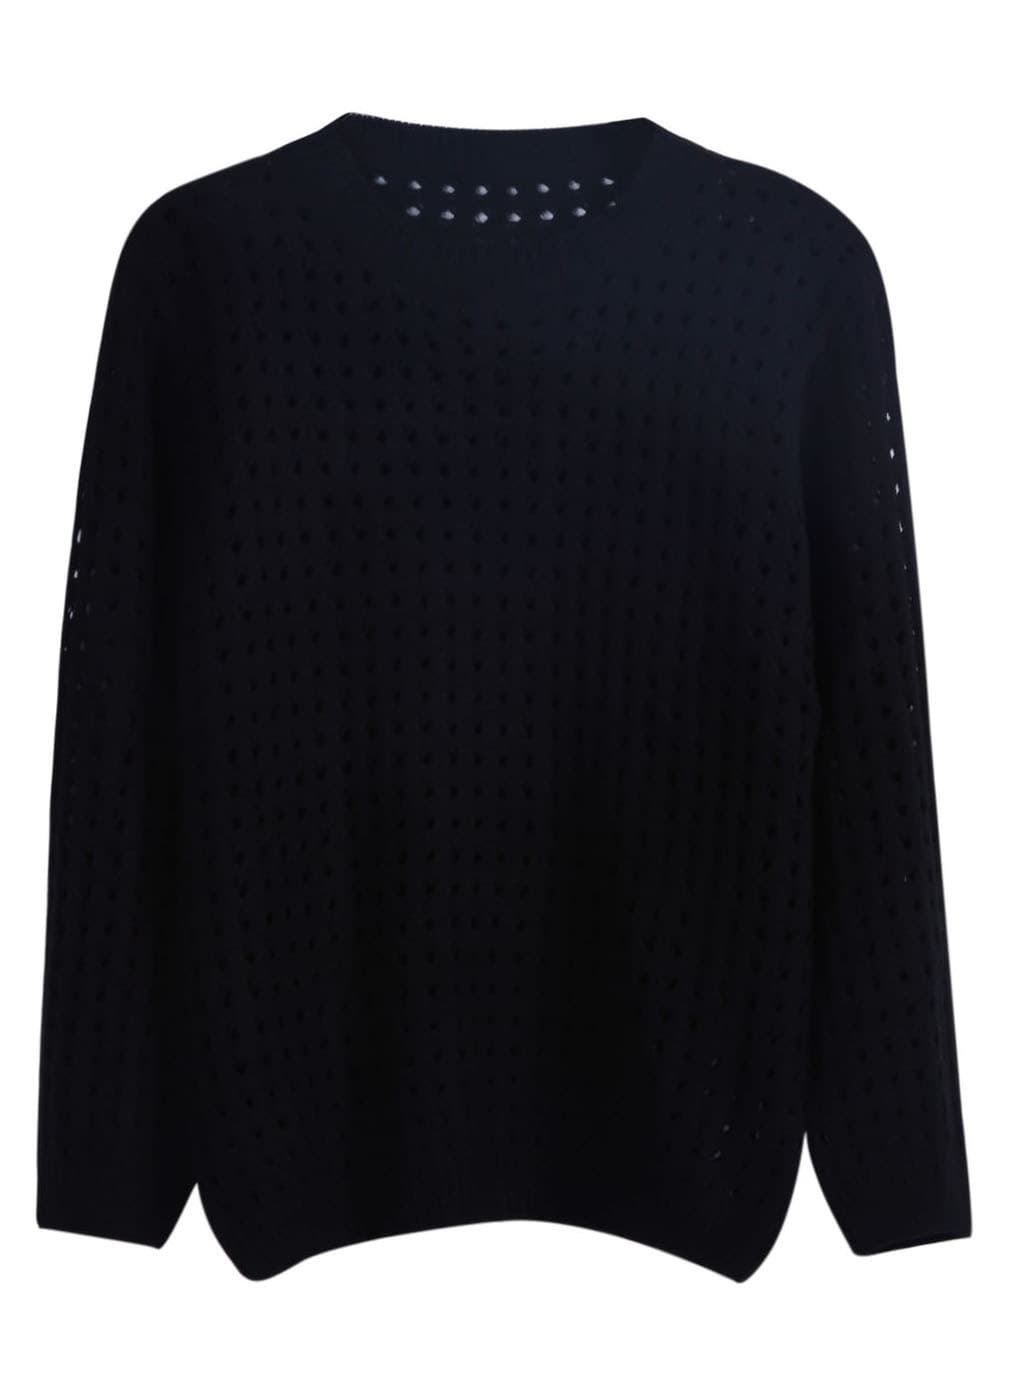 Black Long Sleeve Hollow Pullover Knit Sweater -SheIn(Sheinside)